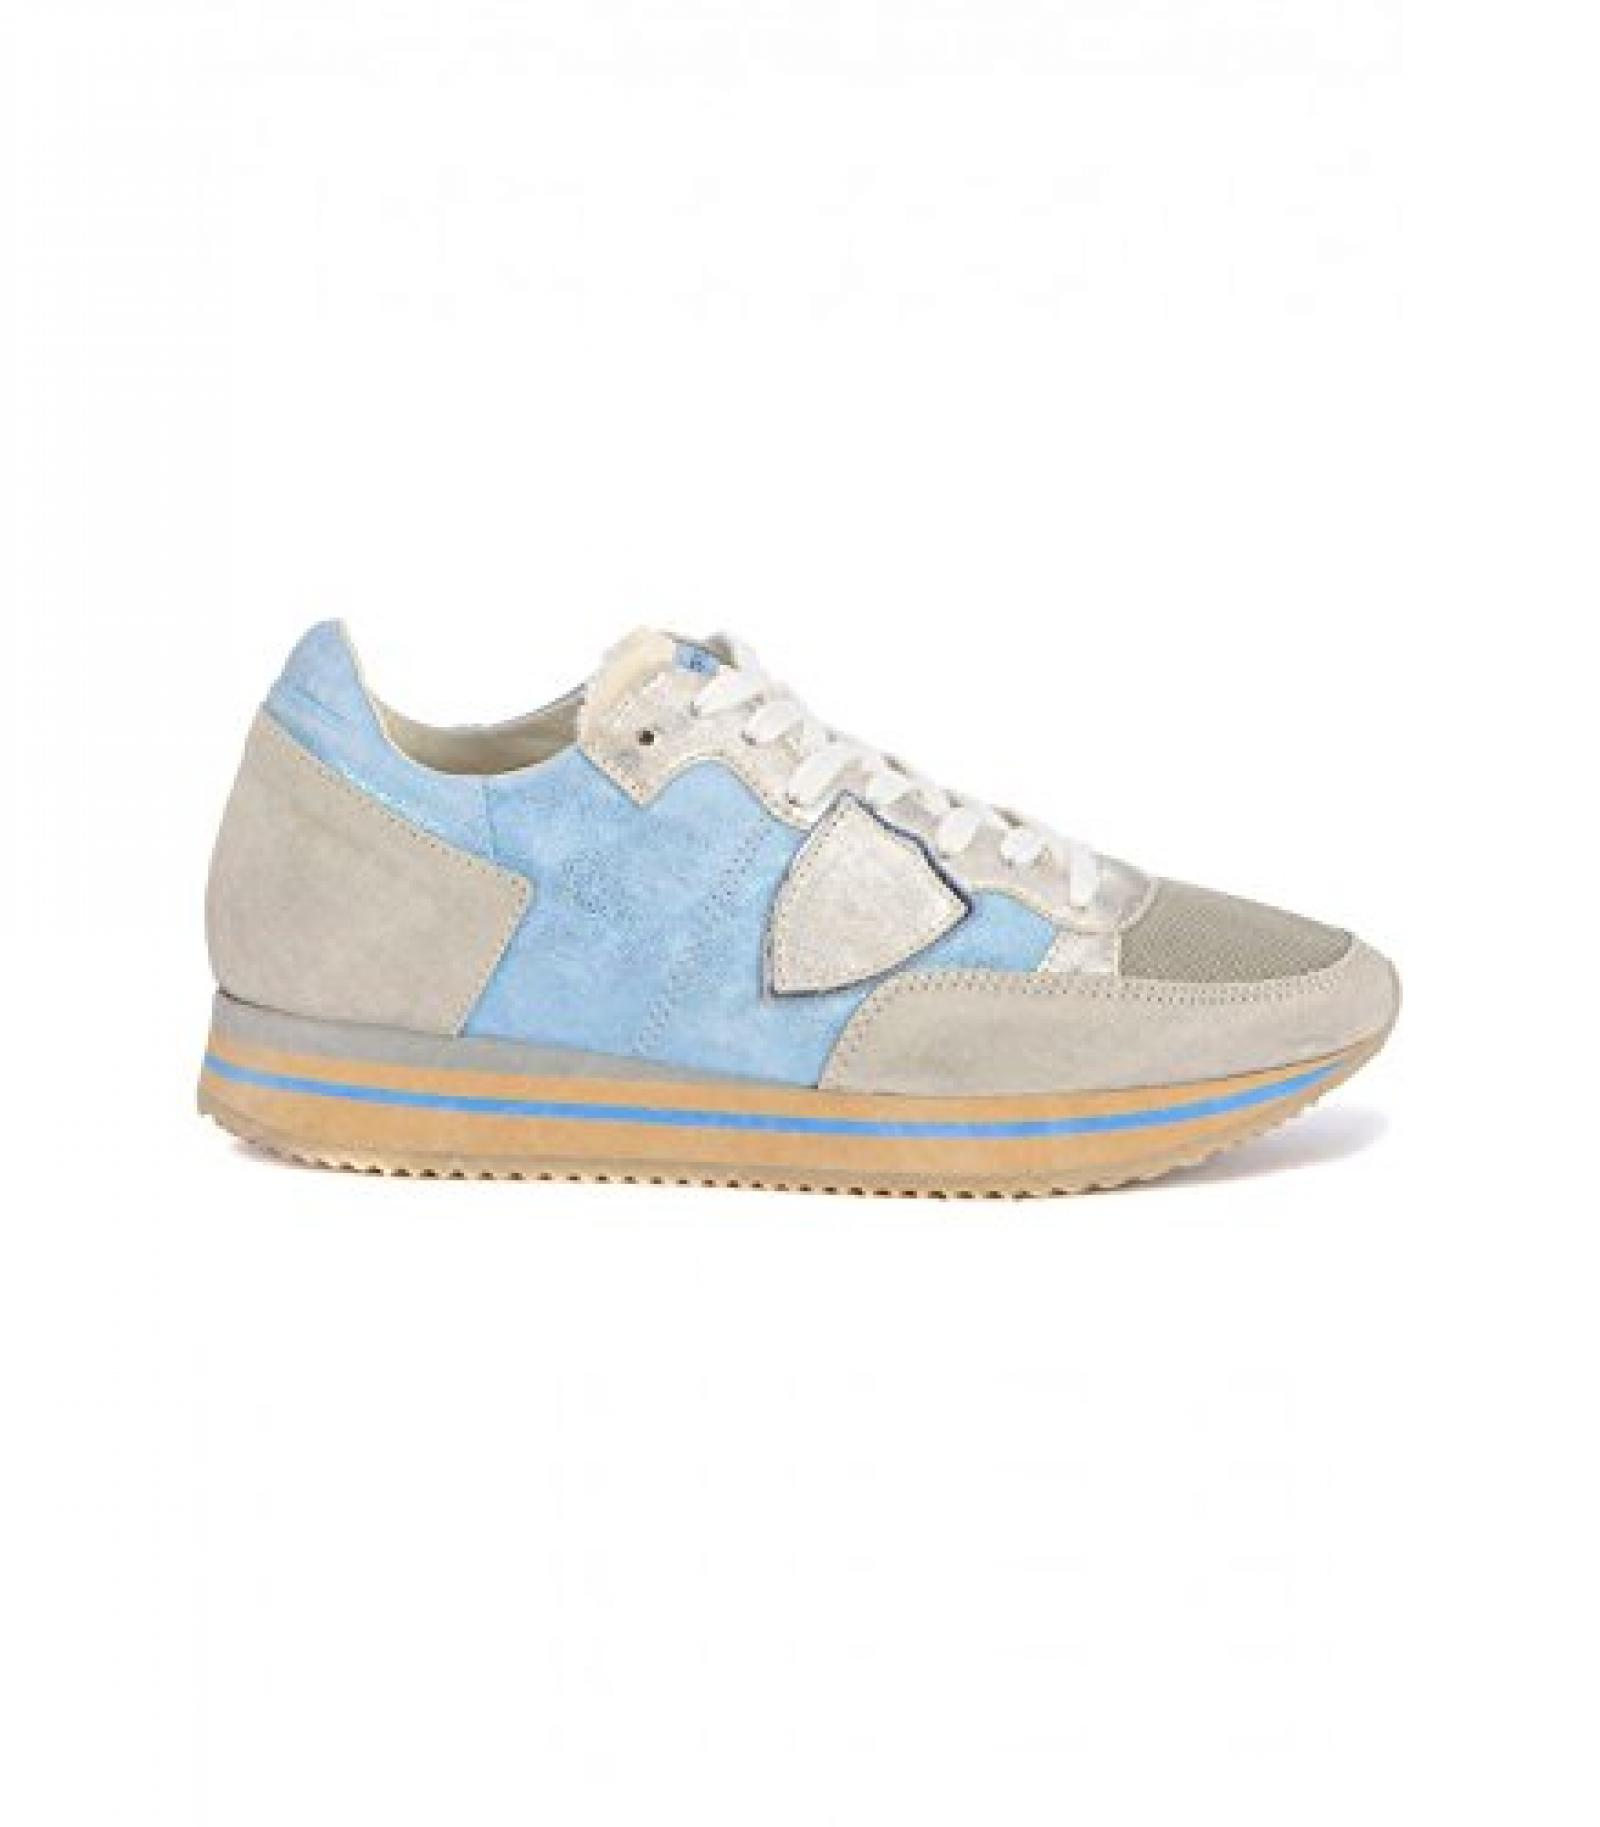 PHILIPPE MODEL TRLD HL05 BLAU WILDLEDER SNEAKERS